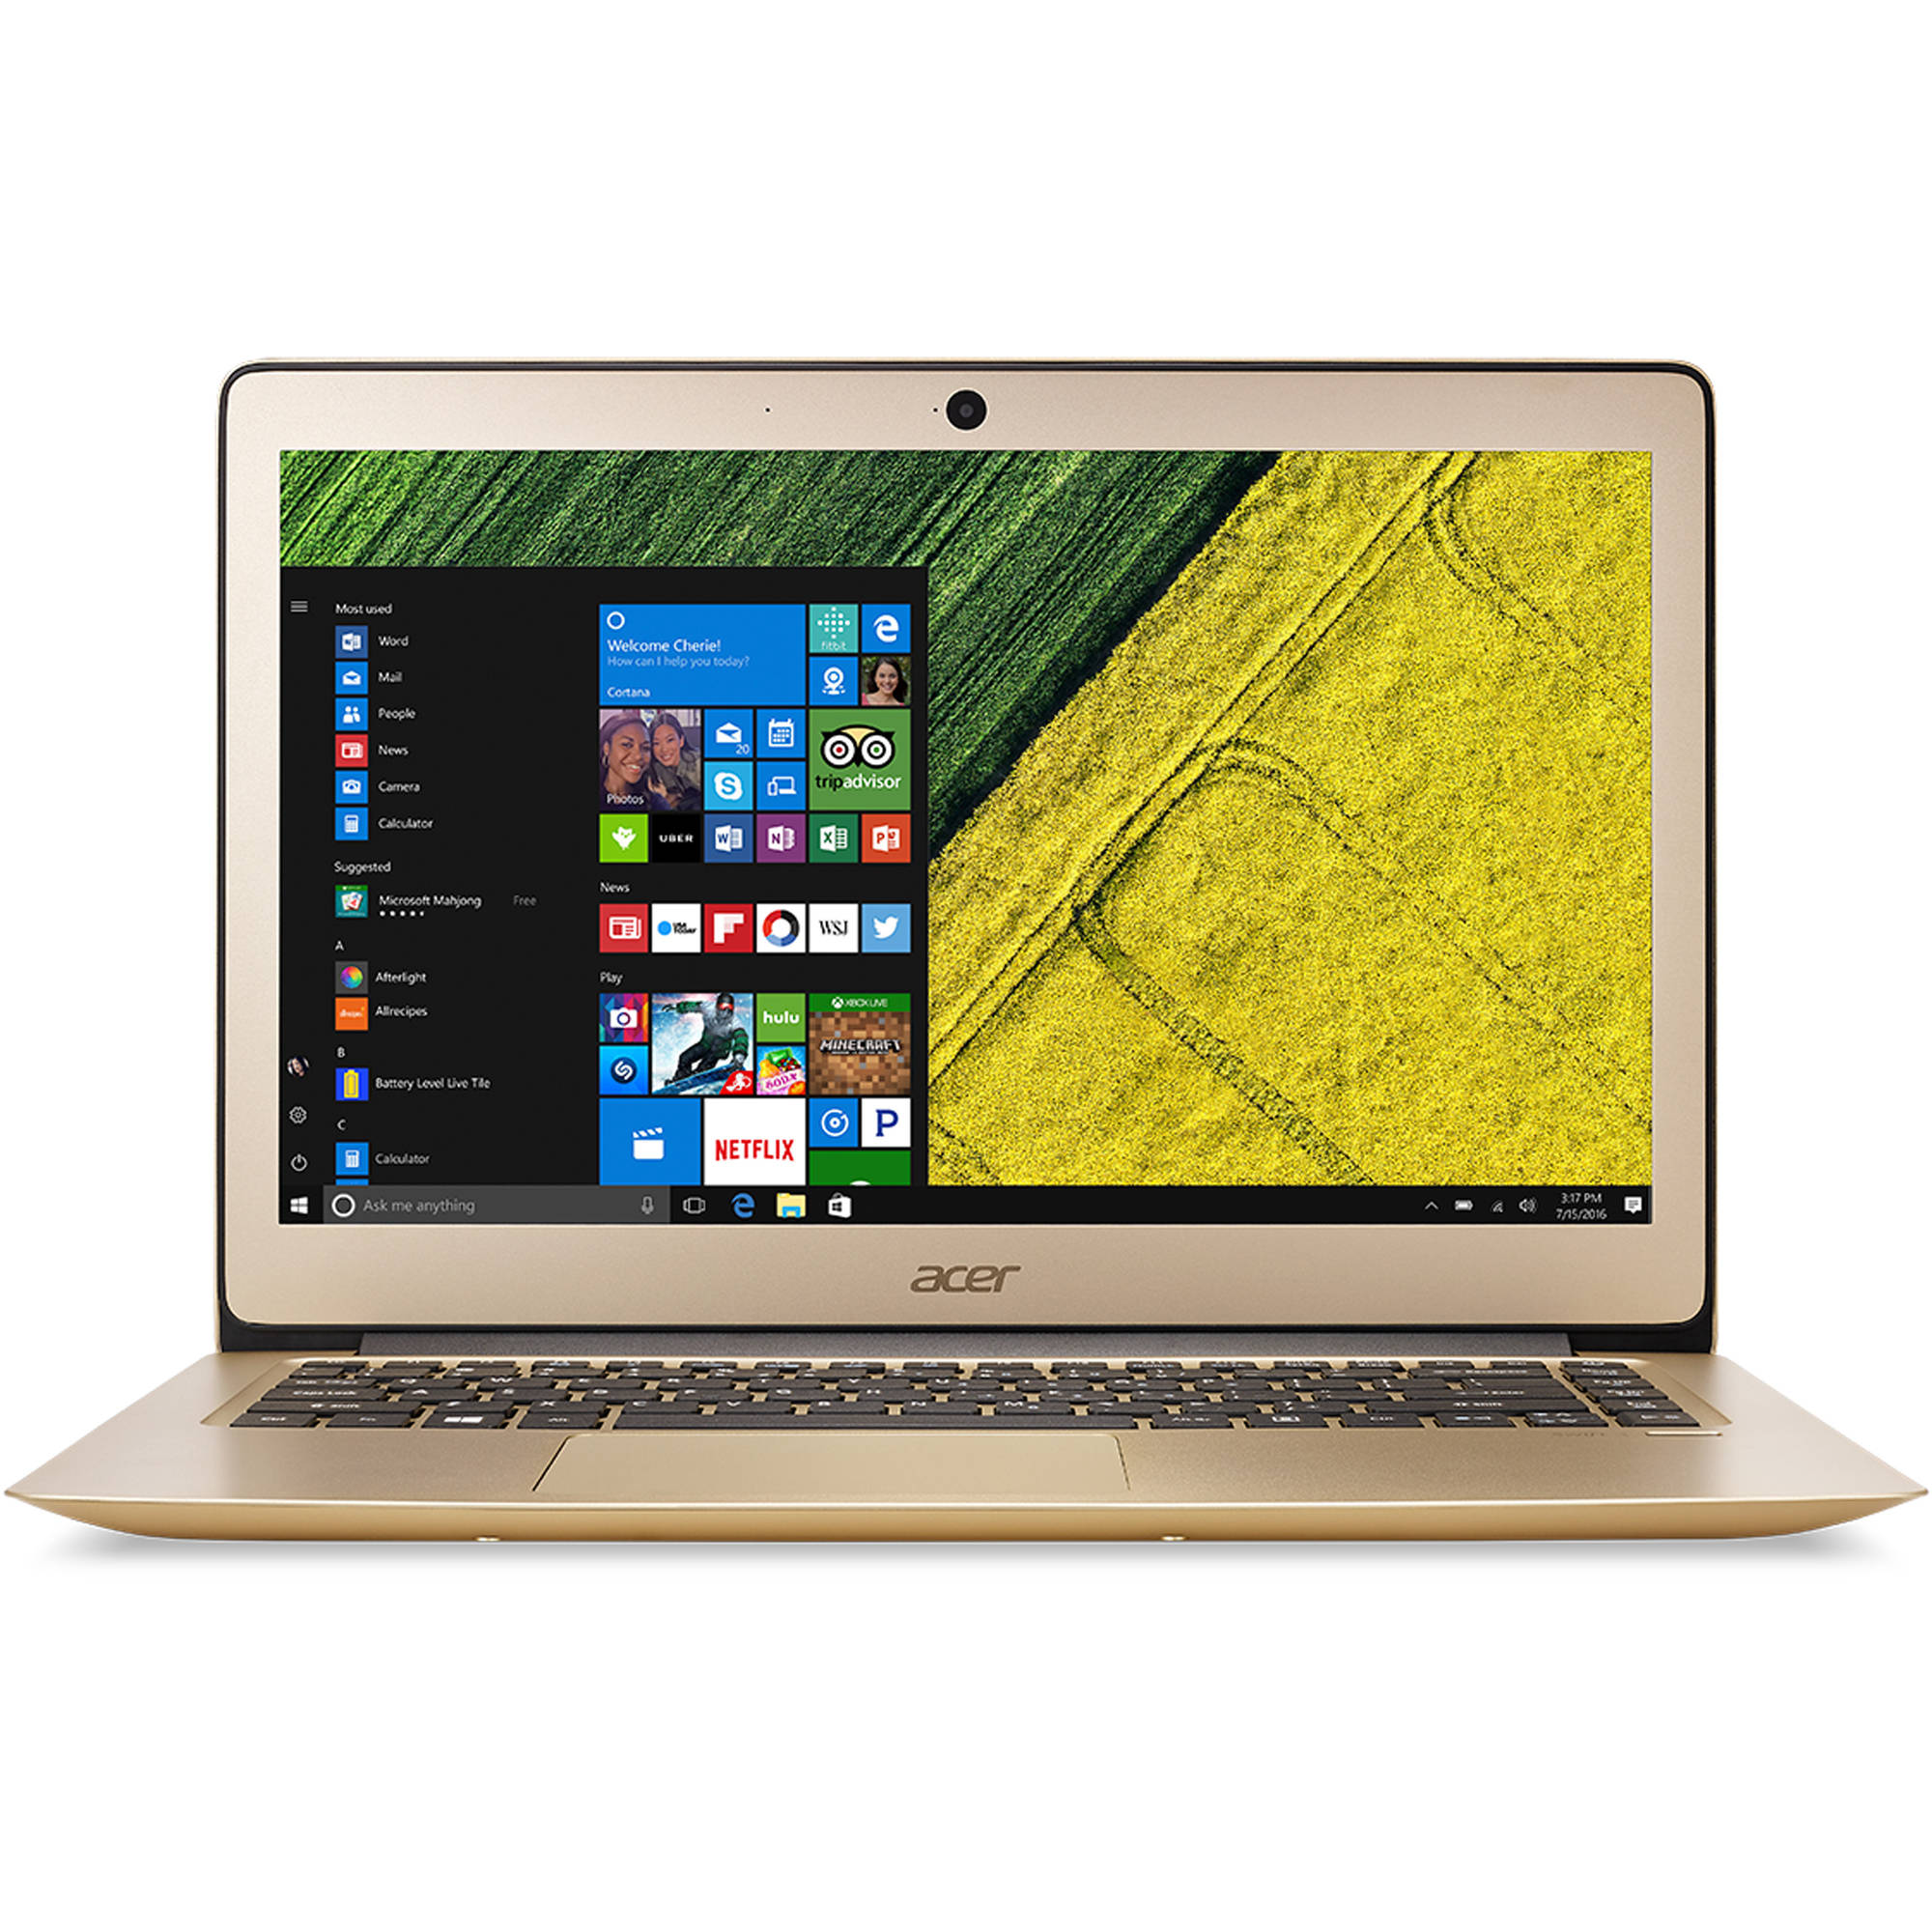 "Acer Swift 3, 14.1"" Full HD, Intel Core i7-6500U Processor, 8GB RAM, 256GB SSD, Windows Home 10, SF314-51-76R9"